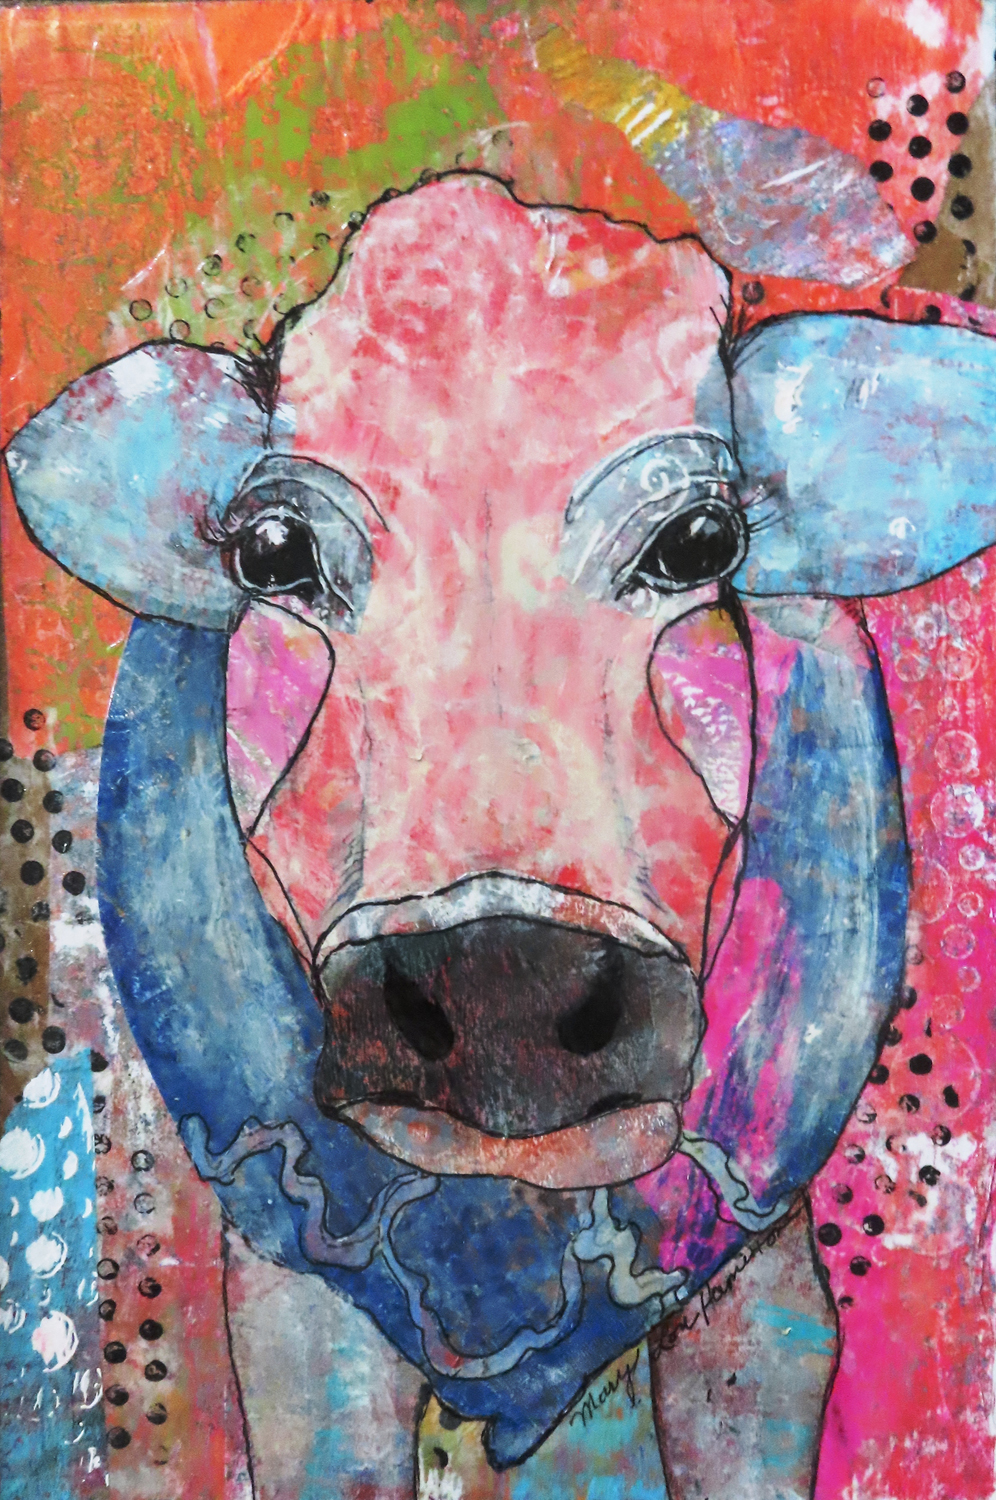 Dreamy Cow - Mary Lou Hamilton